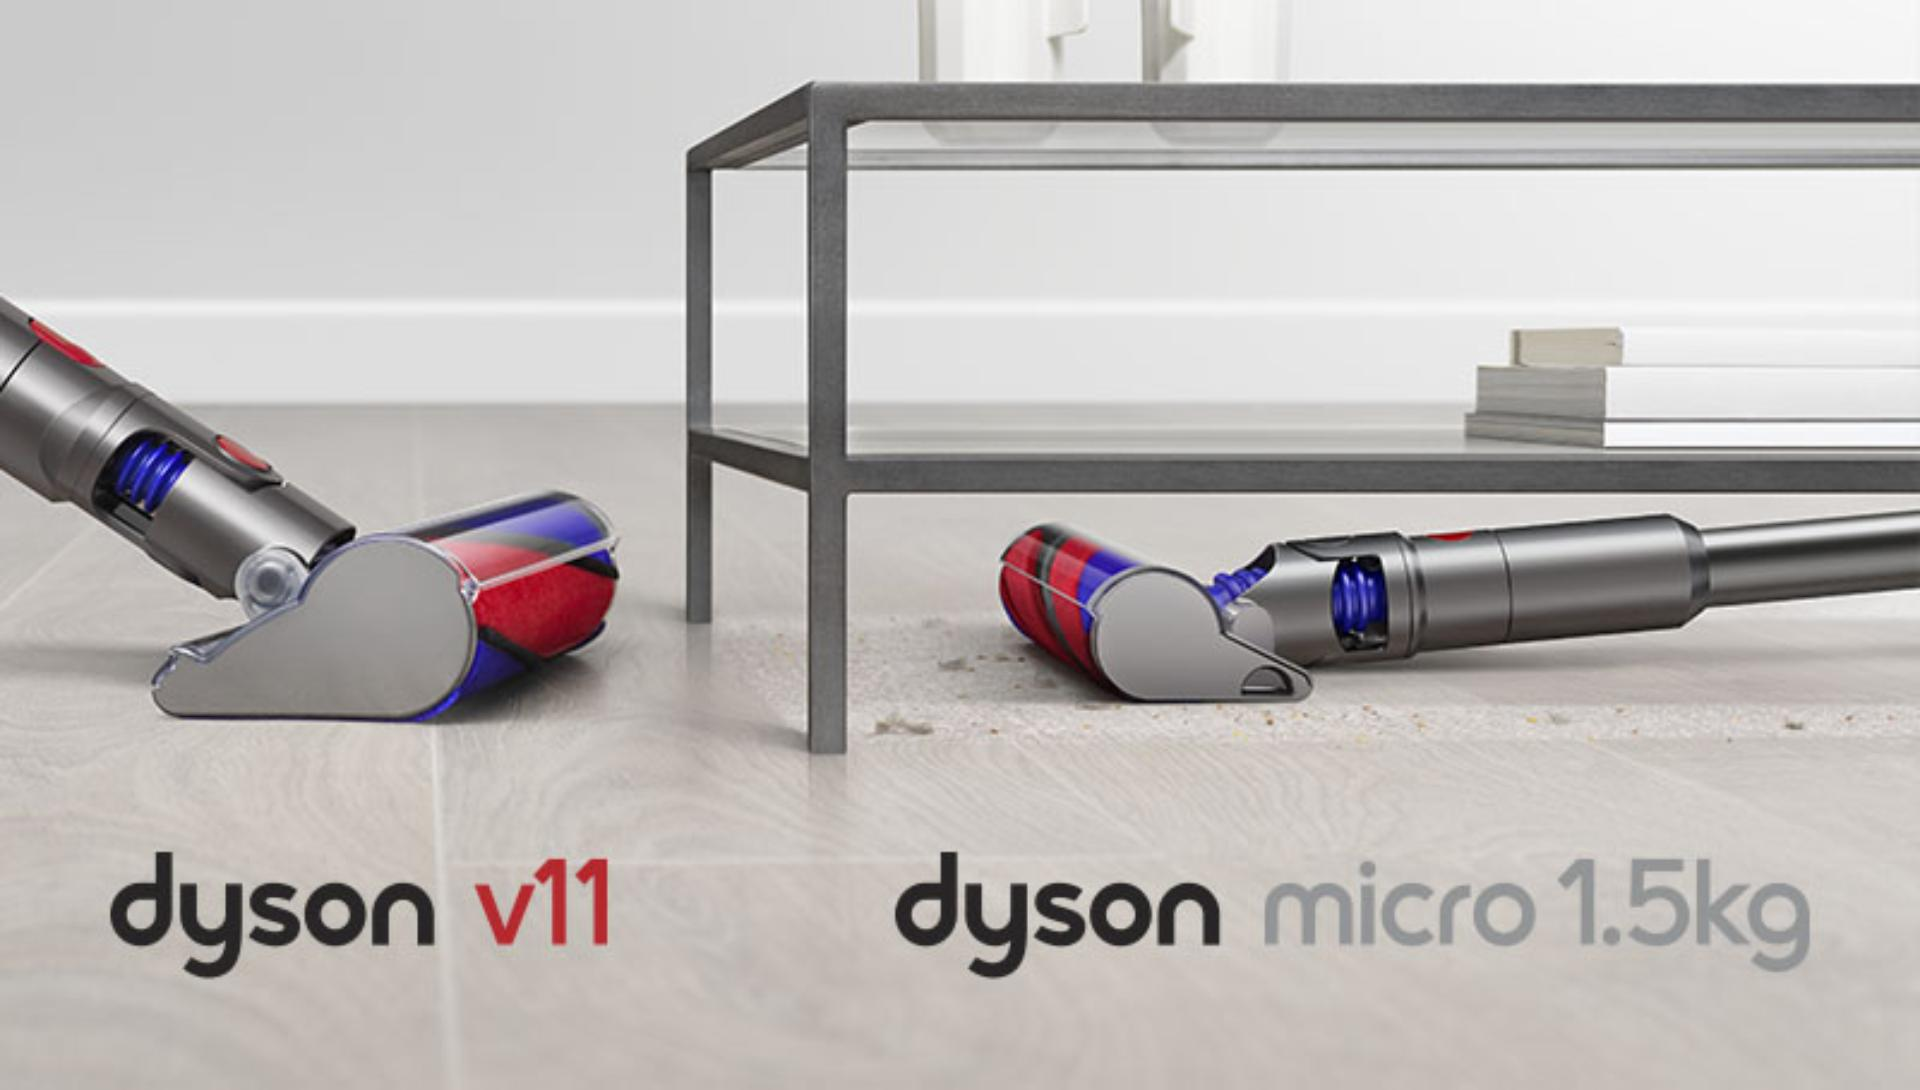 Dyson Micro 1.5kg cleaner head cleaning under a table, in comparison to Dyson V11 cleaner head.